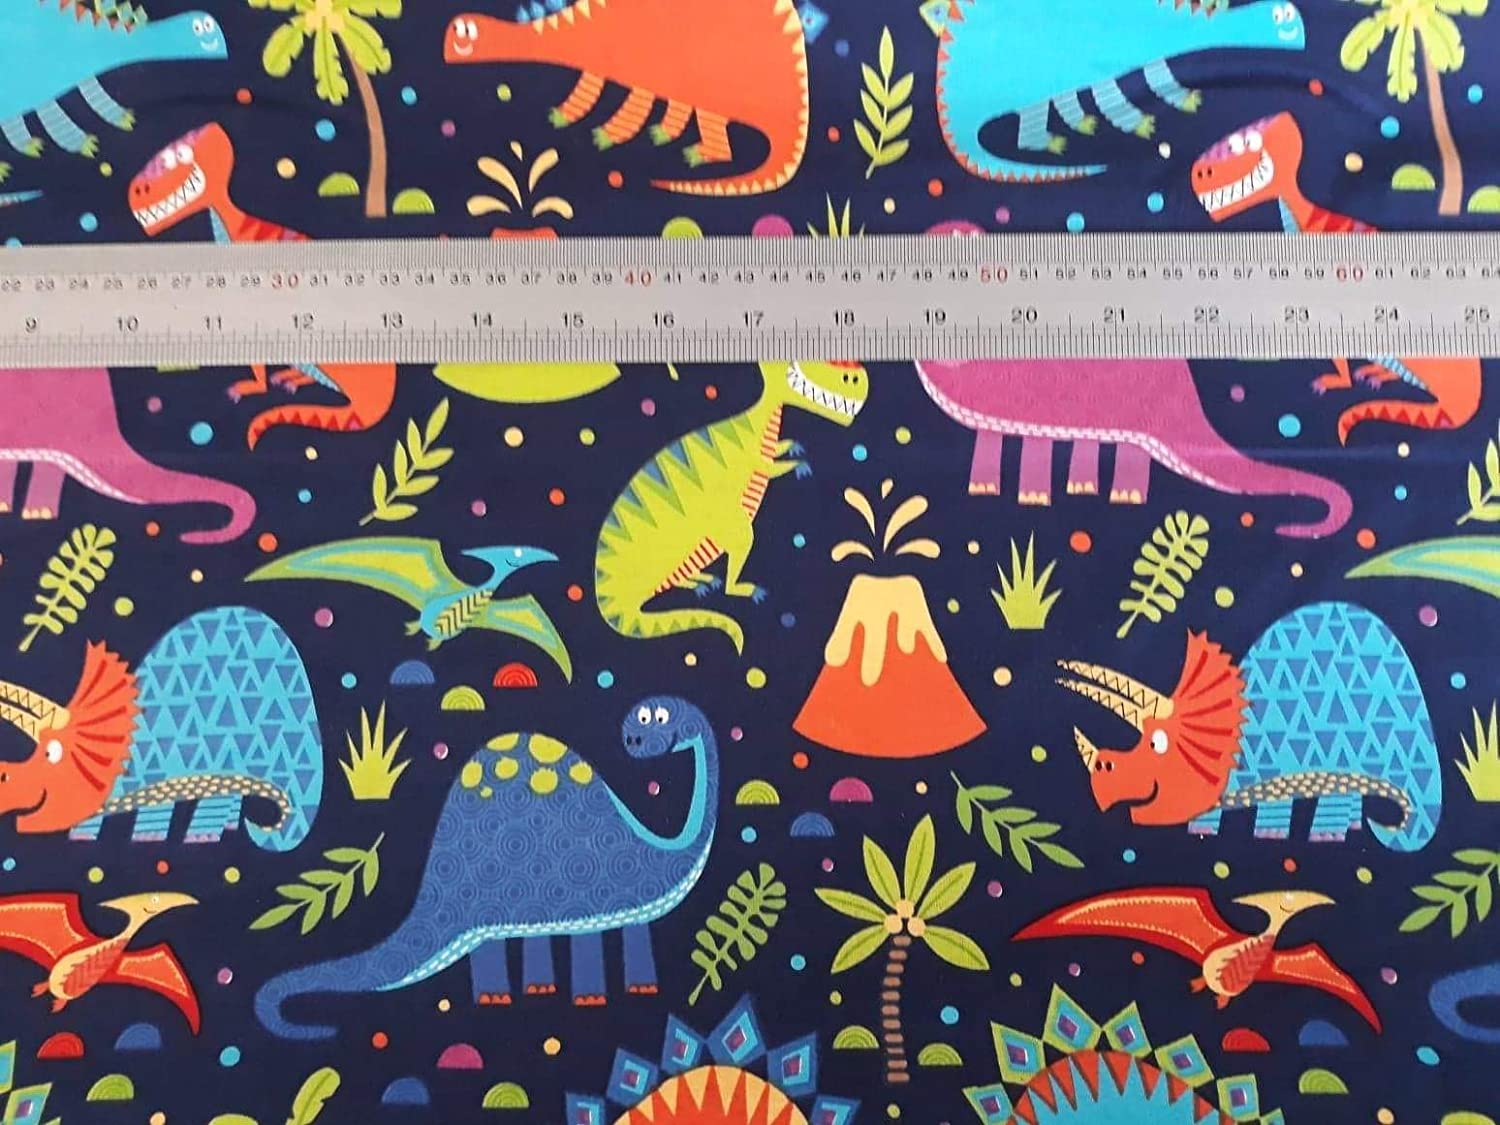 CRAZYLADIES TEXTILES Children Kids Nursery-Bedroom-Curtains-Bedding NURSERY FABRICS 4 Designs in Metres 1 METRE, DINO WORLD